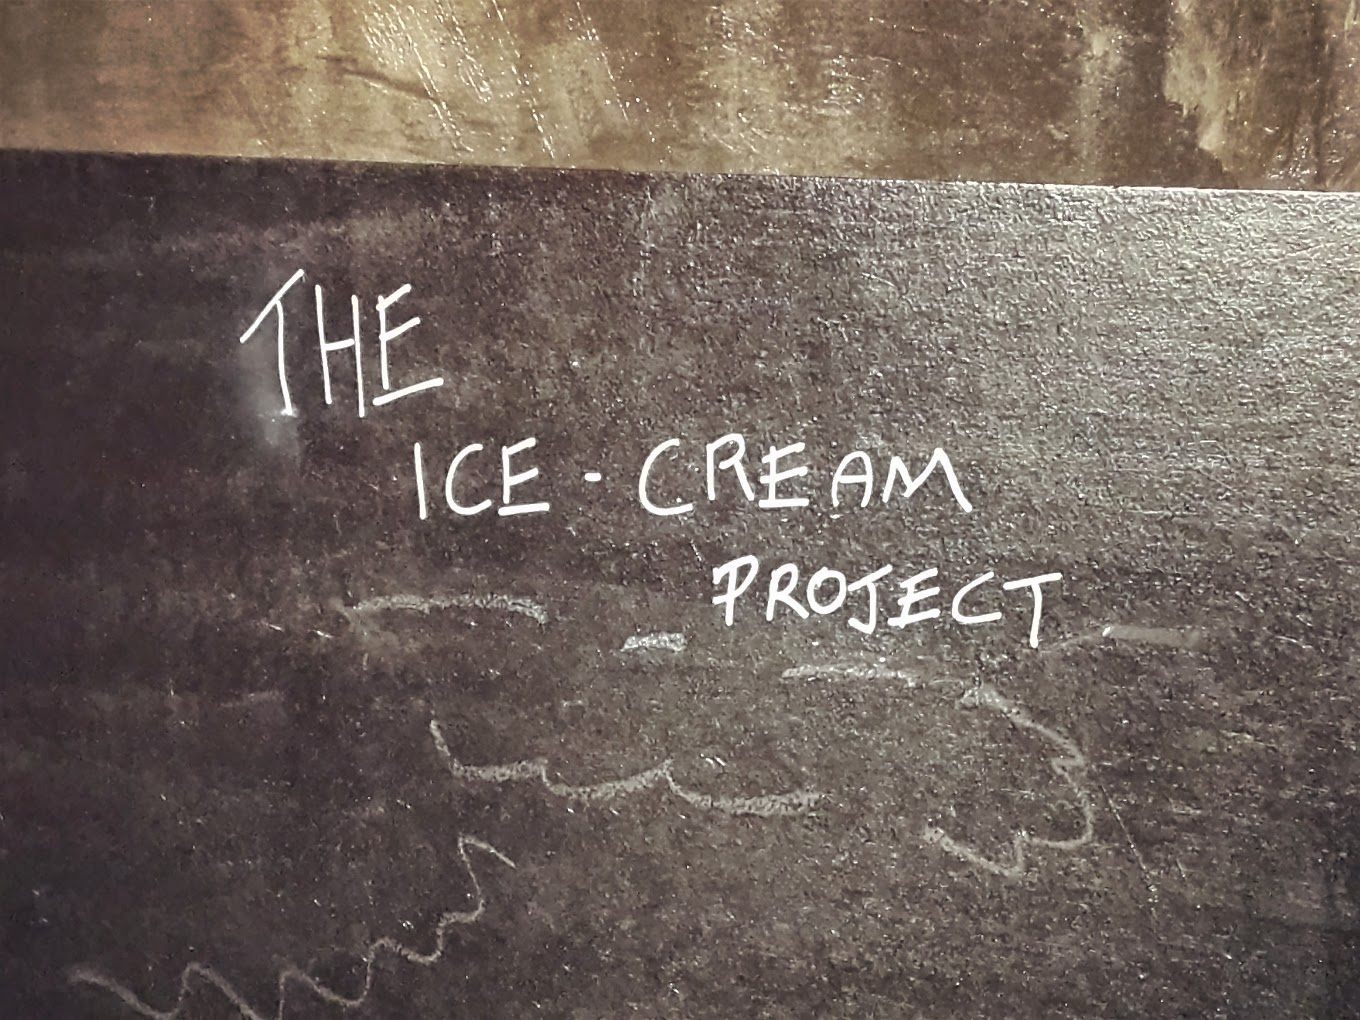 Nice The Ice Cream Project TIP a business run by an ice cream passionate is situated right smack in the middle of Jalan Dhoby just opposite IT Roo Cafe